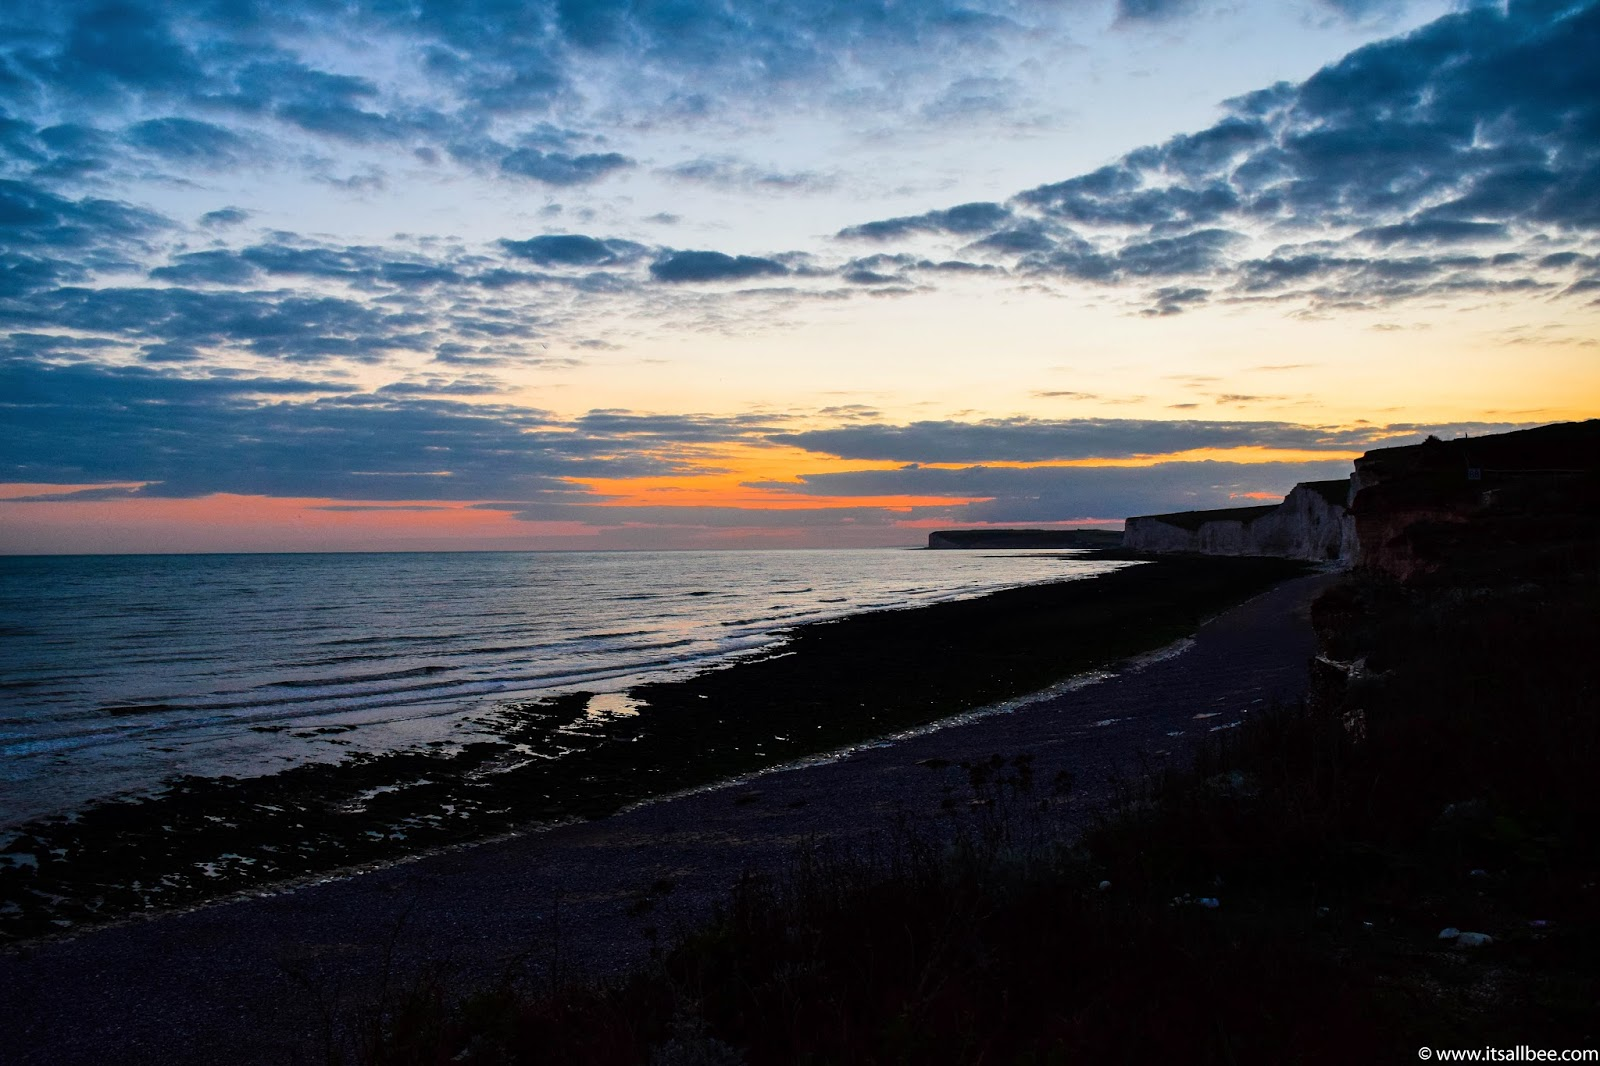 Guide to exploring Seven Sisters In East Sussex. Hiking in the beautiful white chalk hills of East Sussex. Perfect weekend getaway from London. #Eastbourne #BirlingtonGap #Newhaven #Seaford #traveltip #beaches #britain #LondonGetaways #daytrip